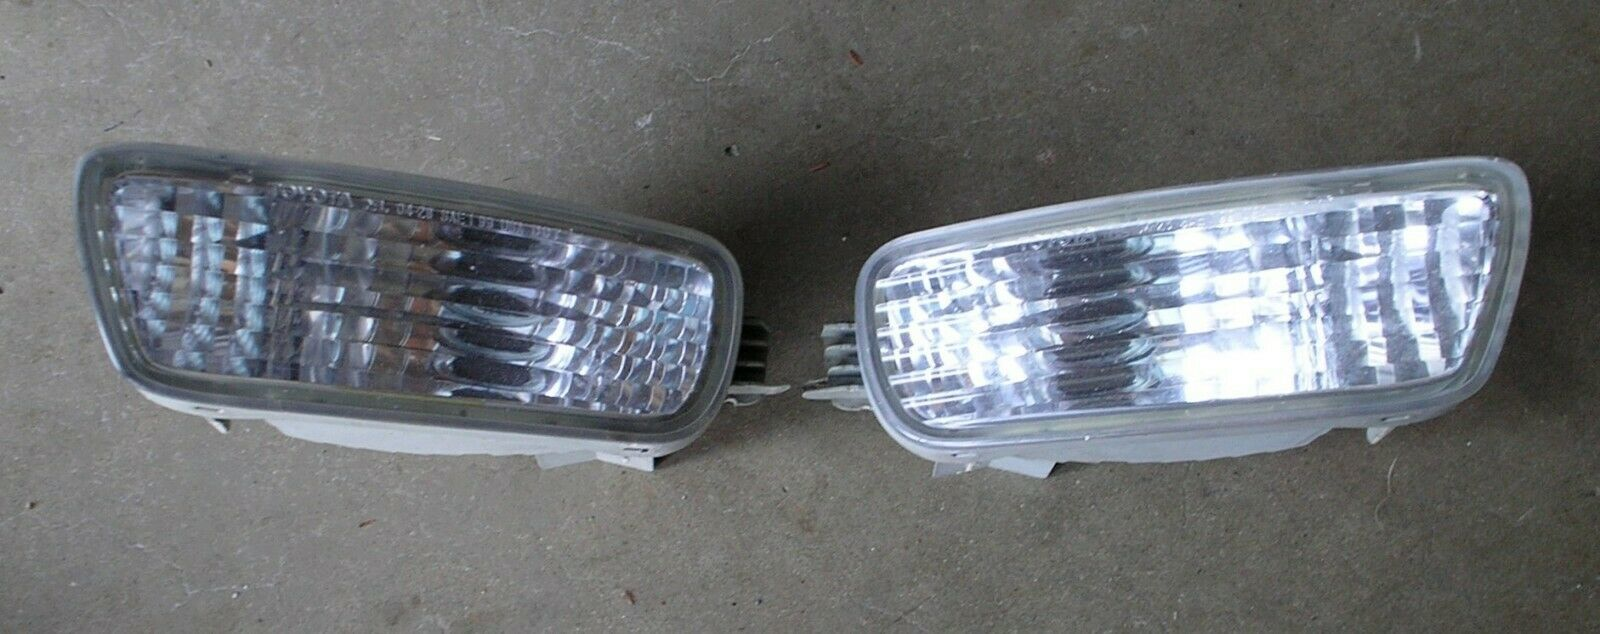 Toyota Tacoma 01-04 Truck Set of Front Signal Marker Lights Lamps & Housing